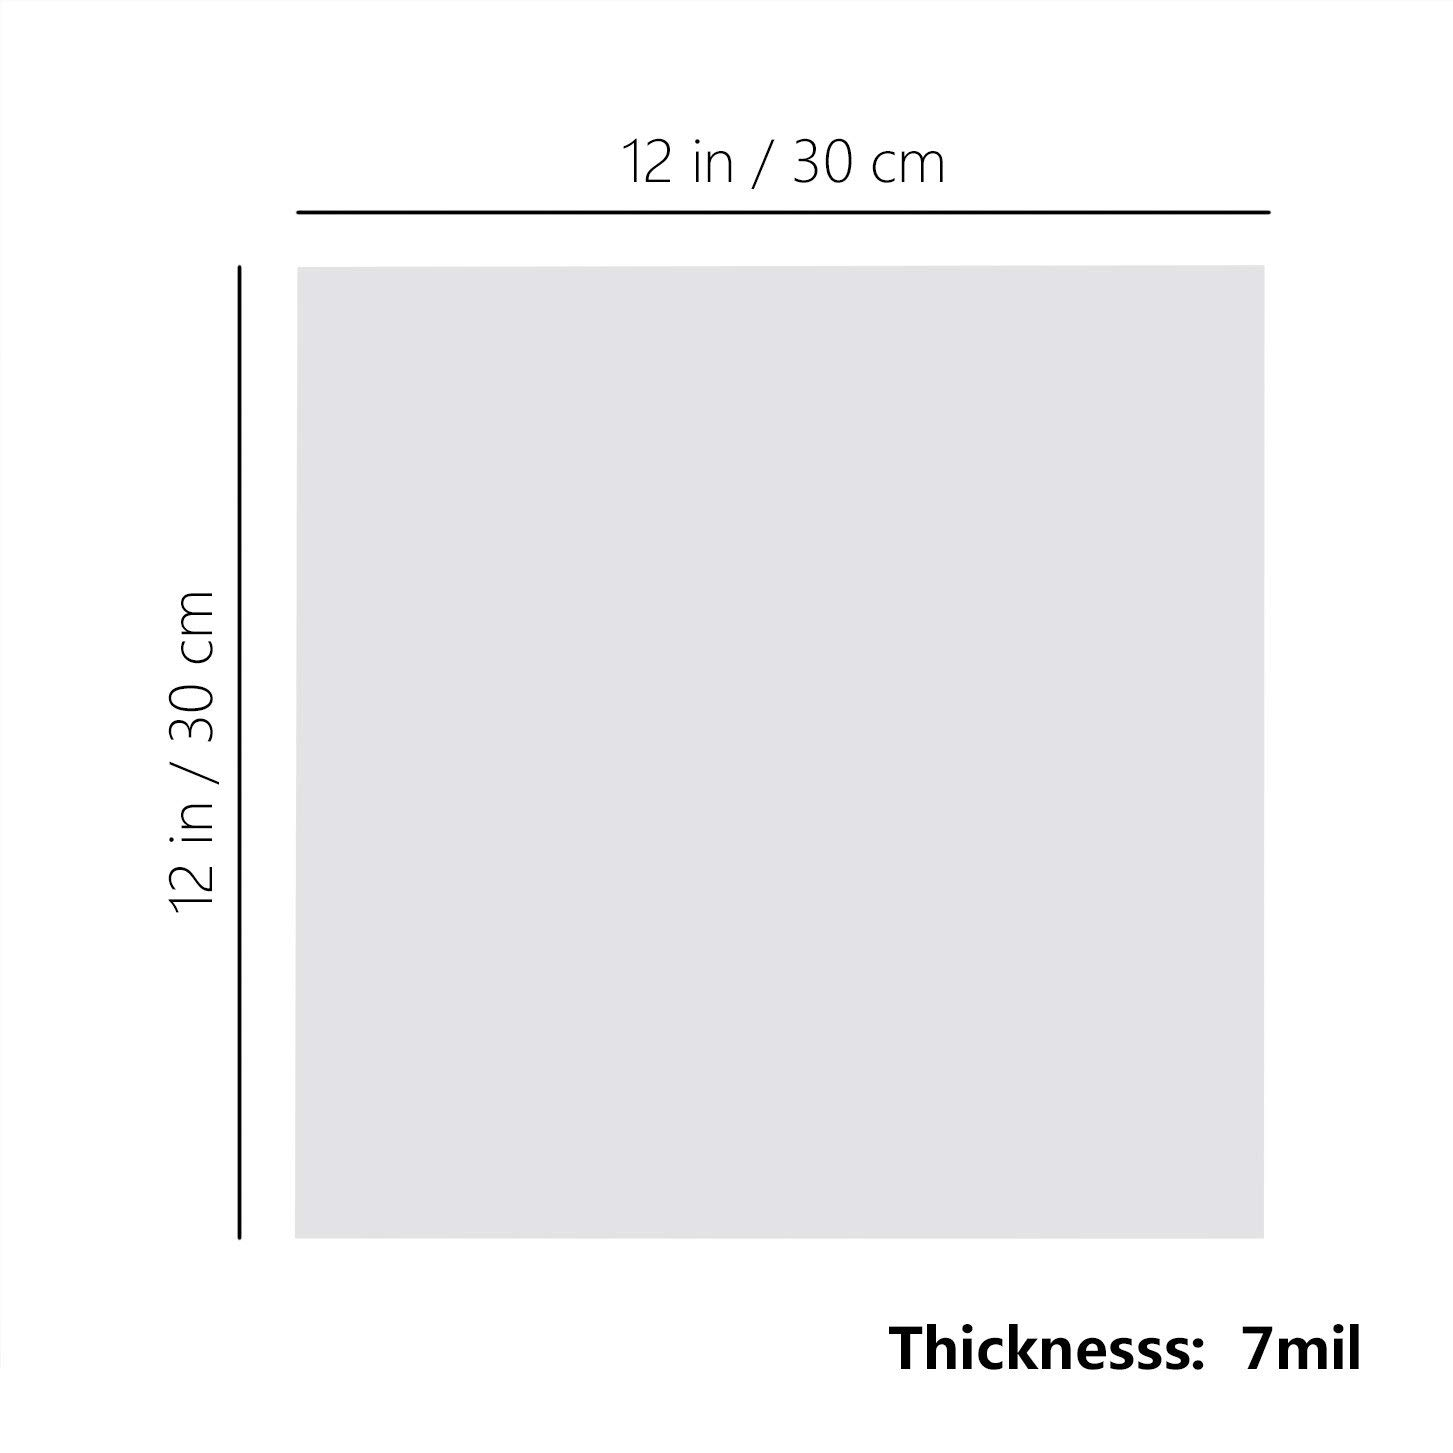 ATPWONZ 10Pcs Blank Stencil Sheets 12 x 12 inch 7 Mil Thickness Square Stencil Paper for Cricut Silhouette Machines